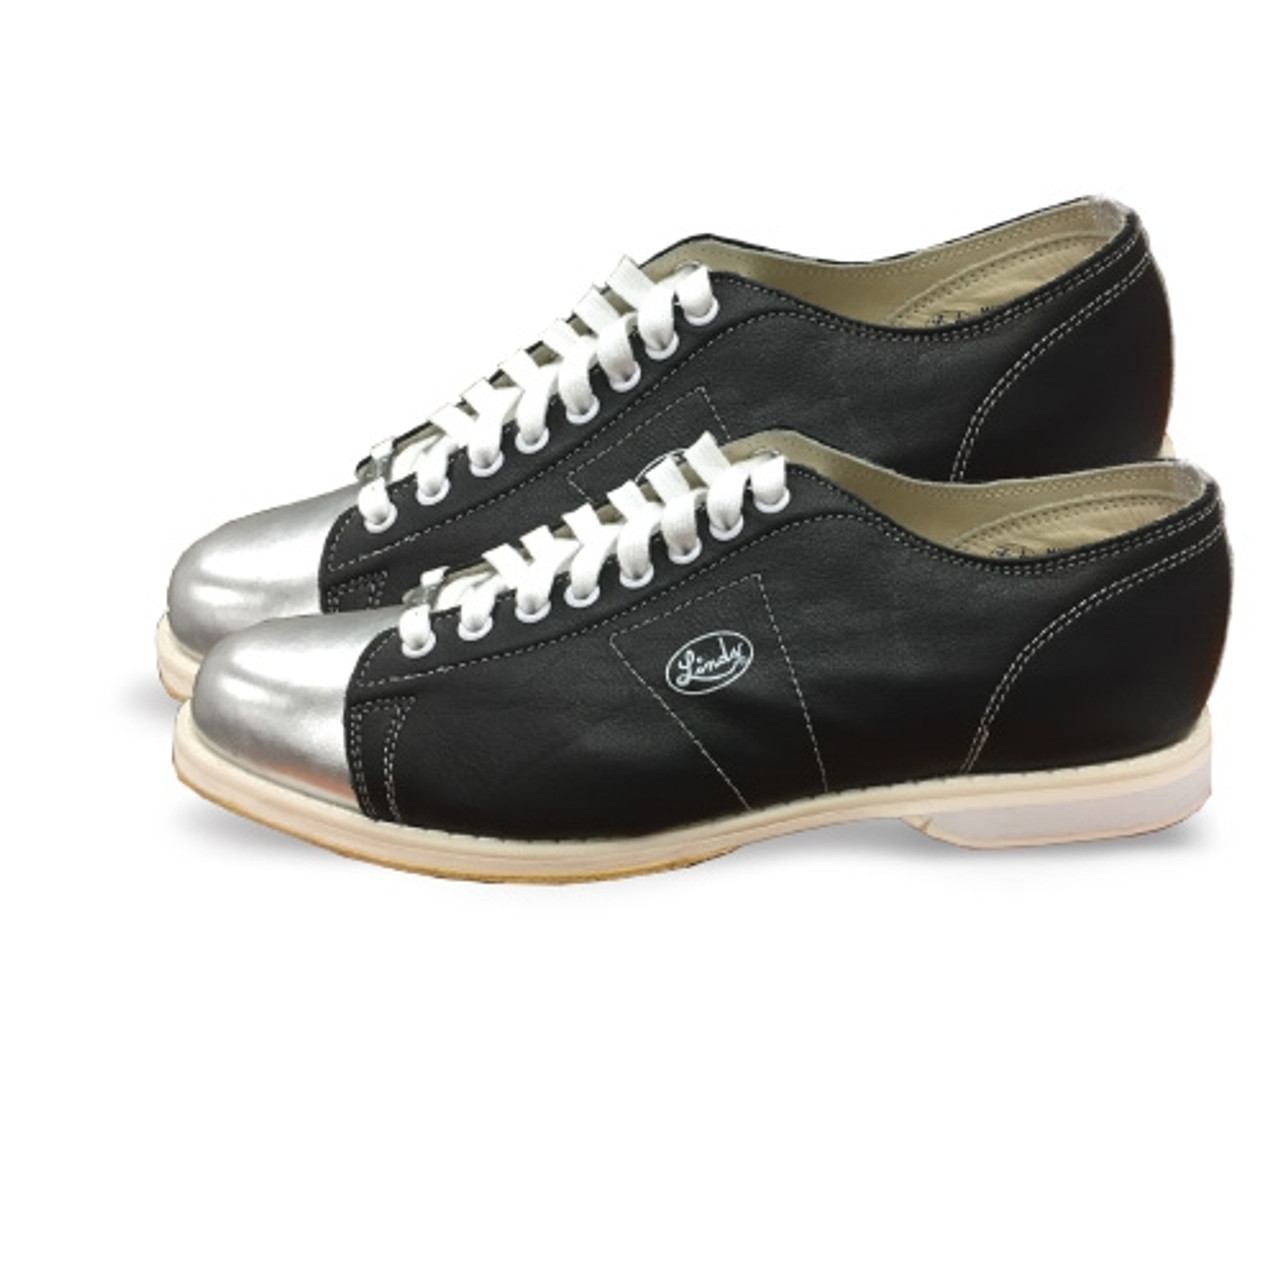 aa6b79ecf4e Linds Special Edition Mens Bowling Shoes Black with Silver Toe Tongue and  Backstay